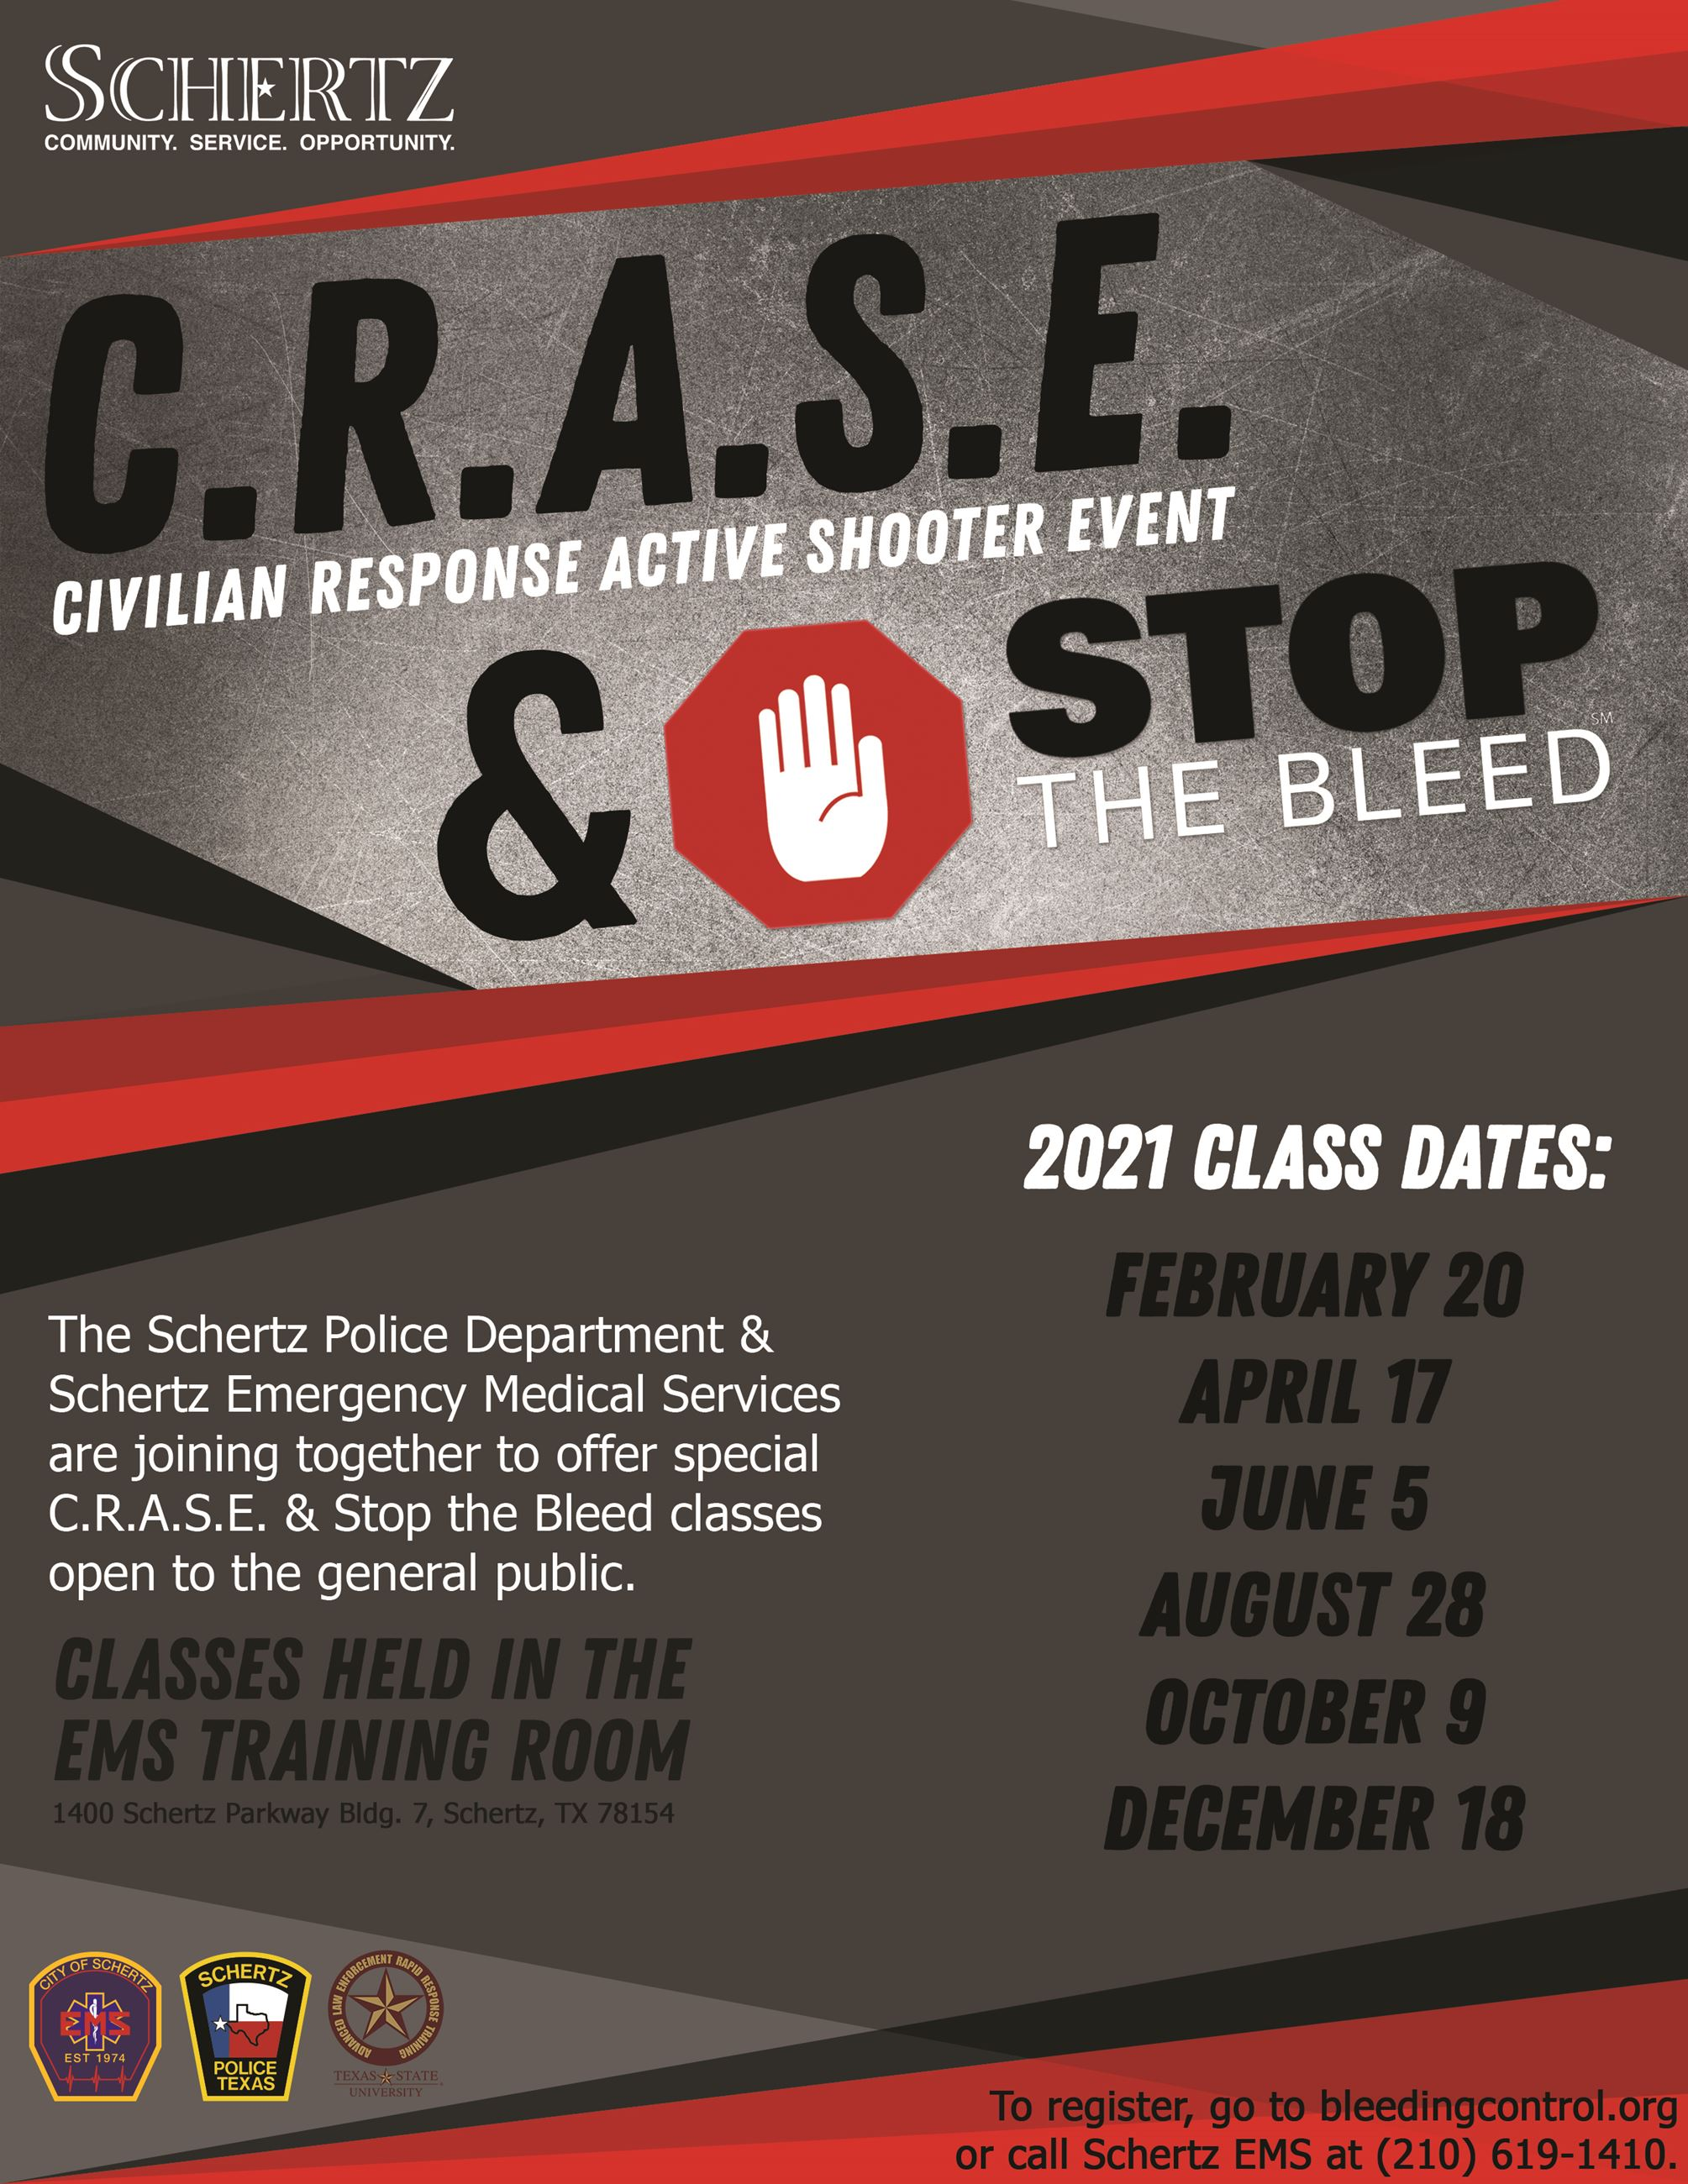 CRASE Stop the Bleed 2021